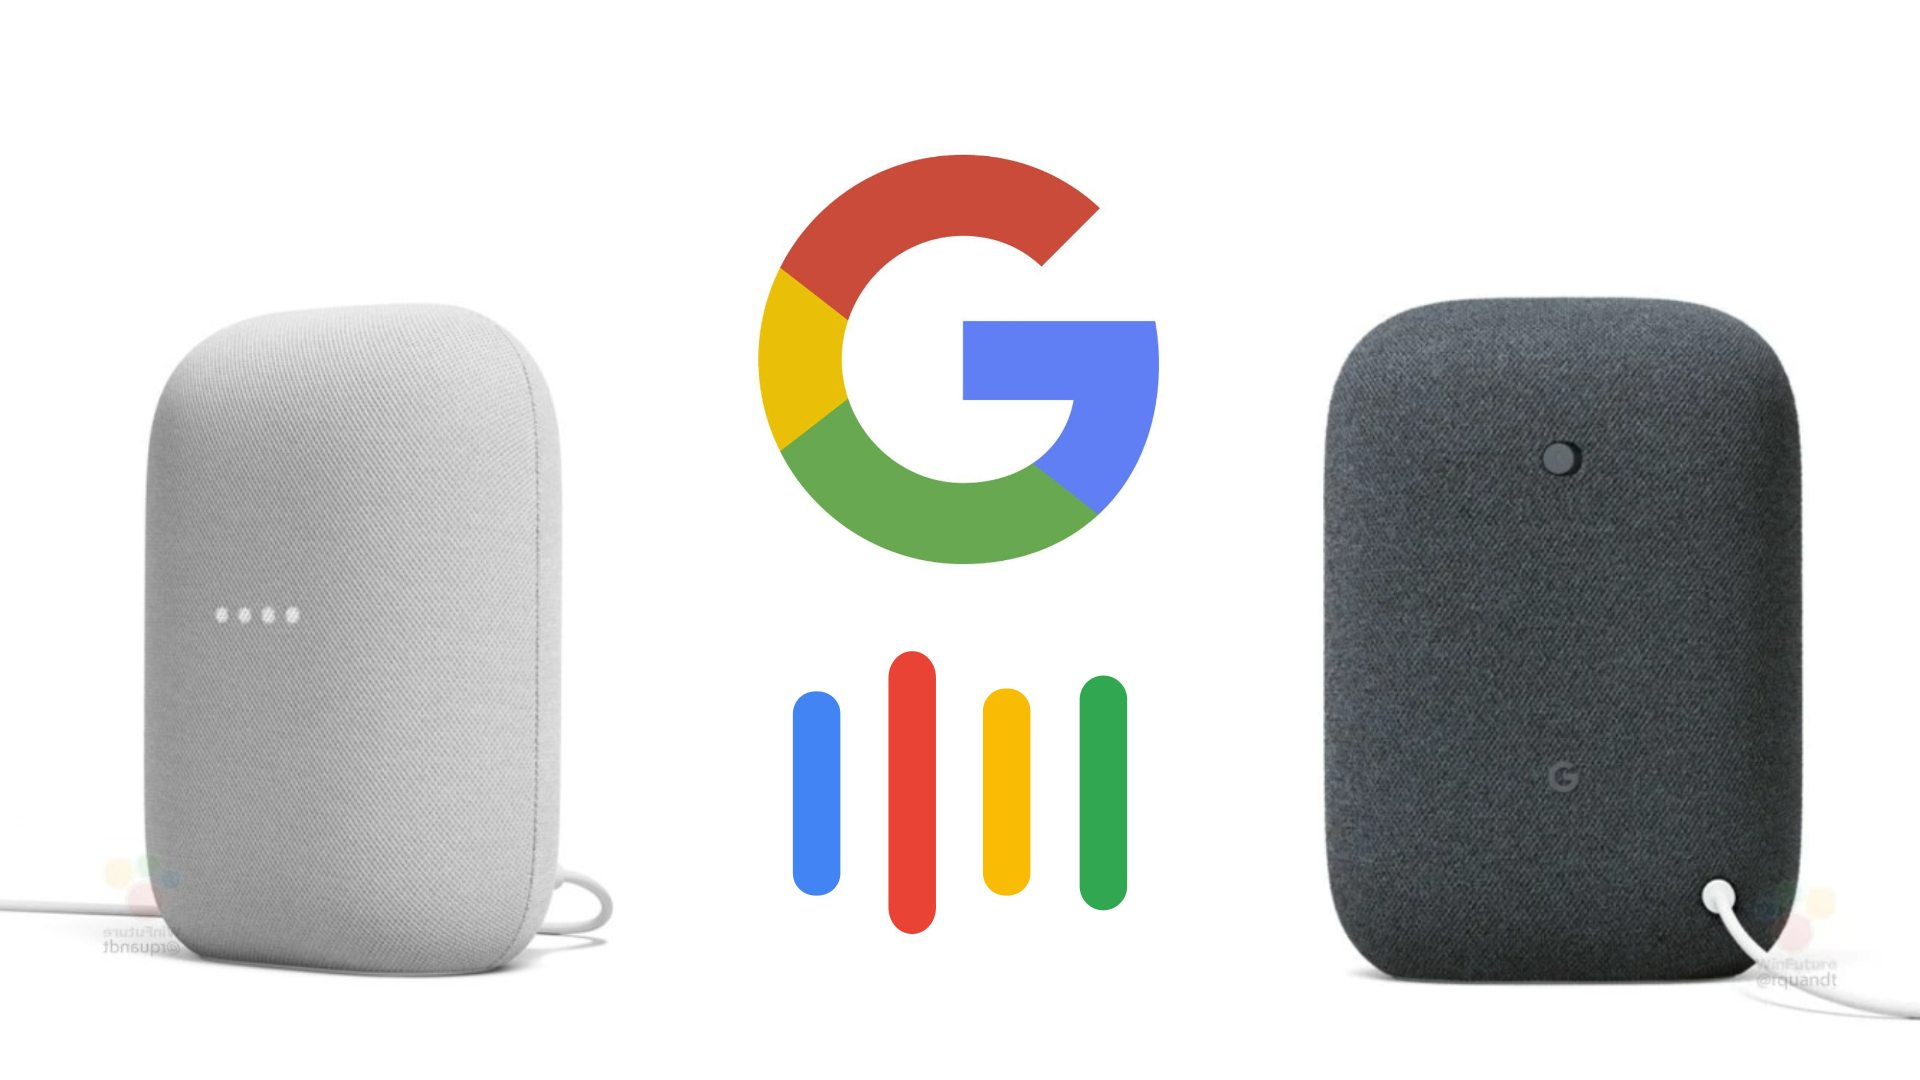 Google's new smart speaker gets a name, leaked pics, and will likely cost less than $100